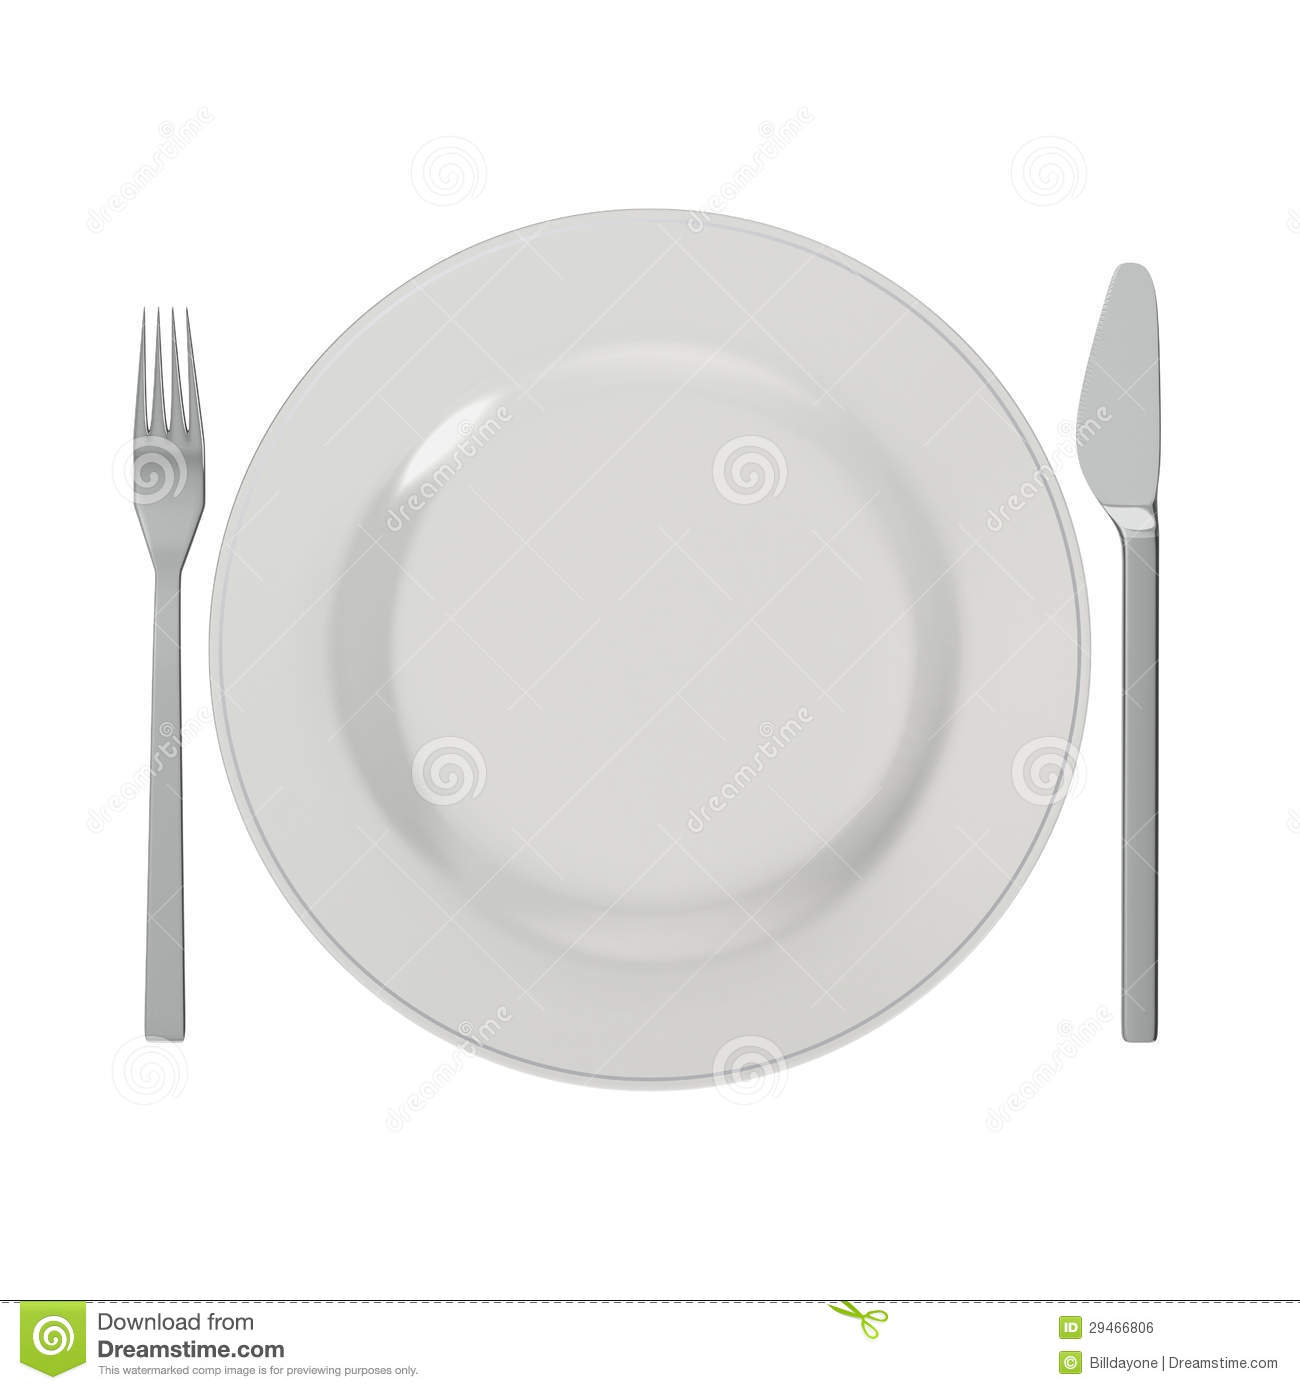 White China And Silverware On White Background Mr No Pr No 0 363 0